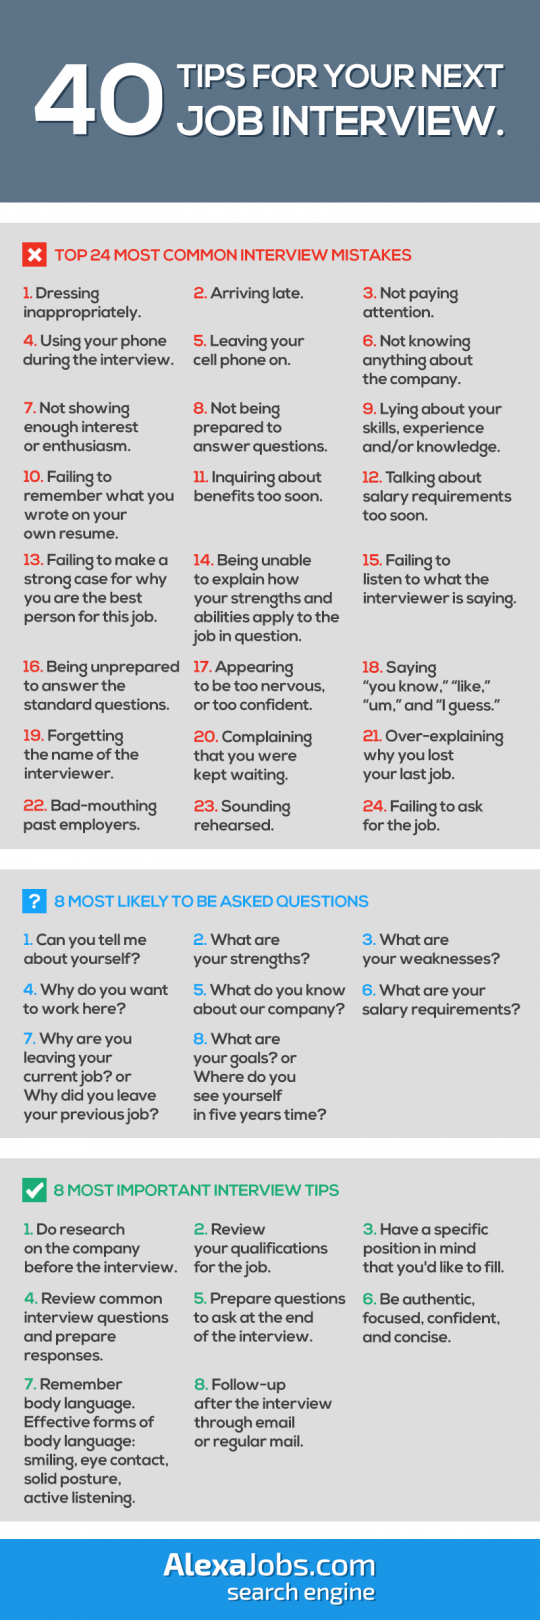 40 Tips For Your Next Job Interview!